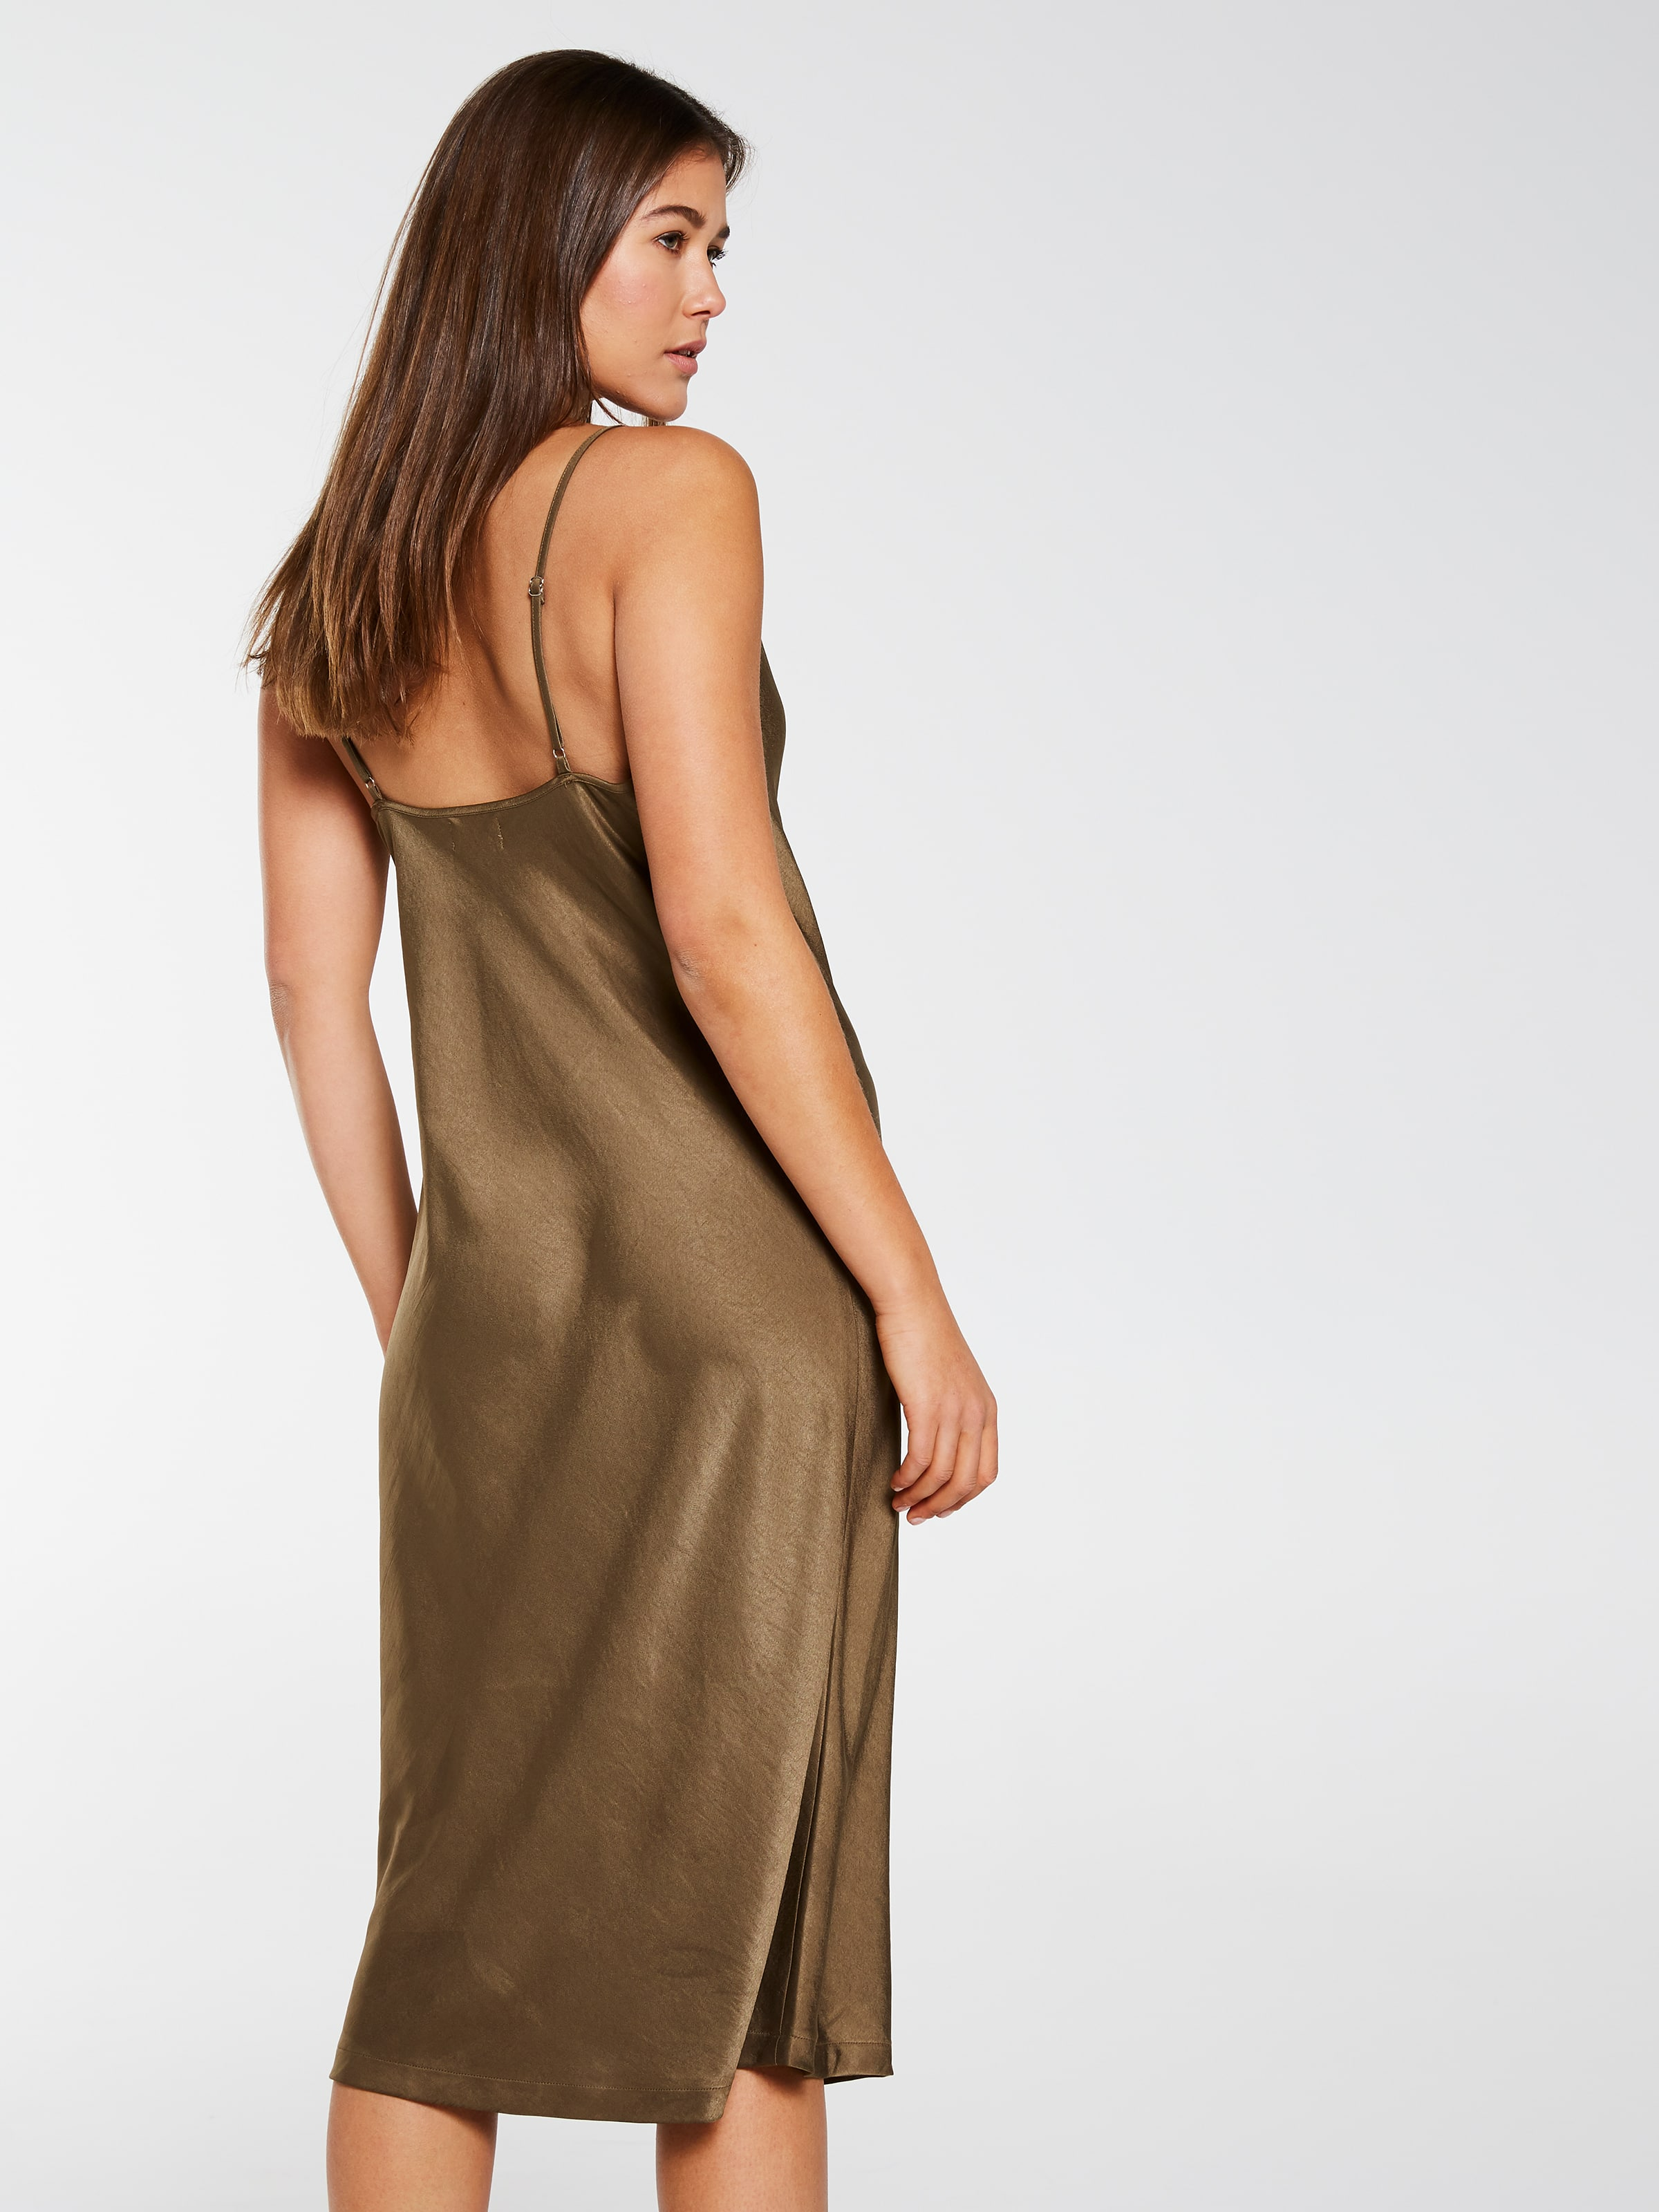 f37a9598cf26 ... Image for The Bond Slip Dress Midi Dress from Dotti Online ...